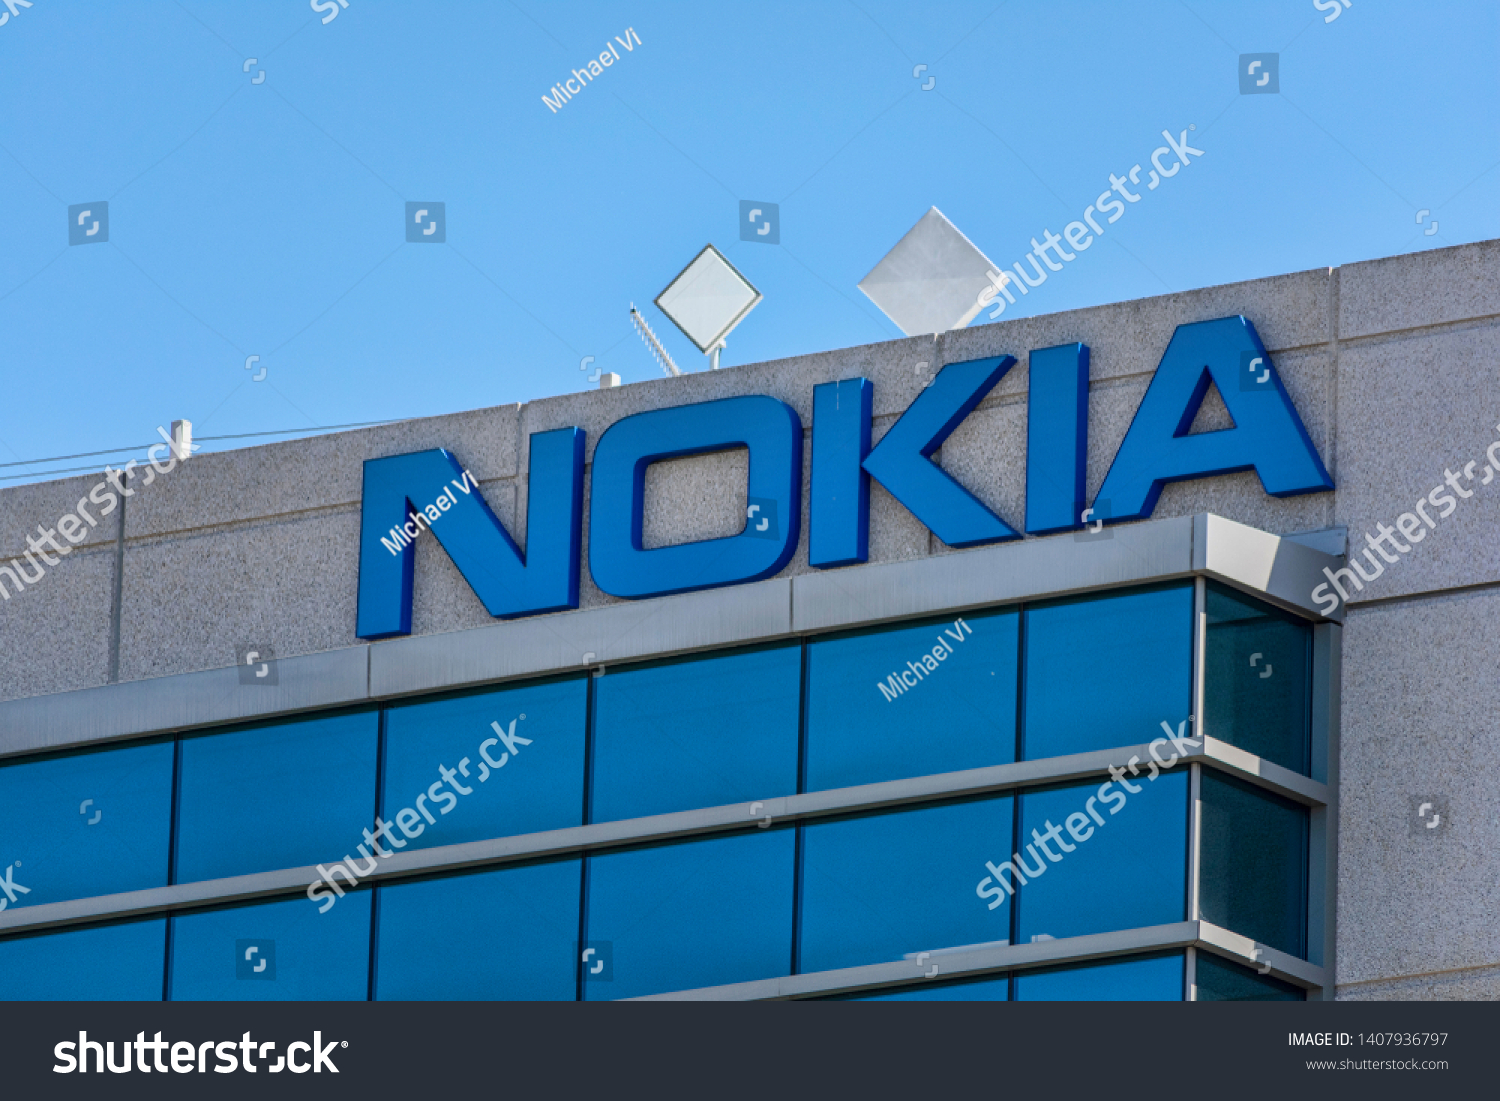 stock-photo-nokia-sign-on-corporate-campus-in-silicon-valley-nokia-is-finnish-multinational-telecommunications-1407936797